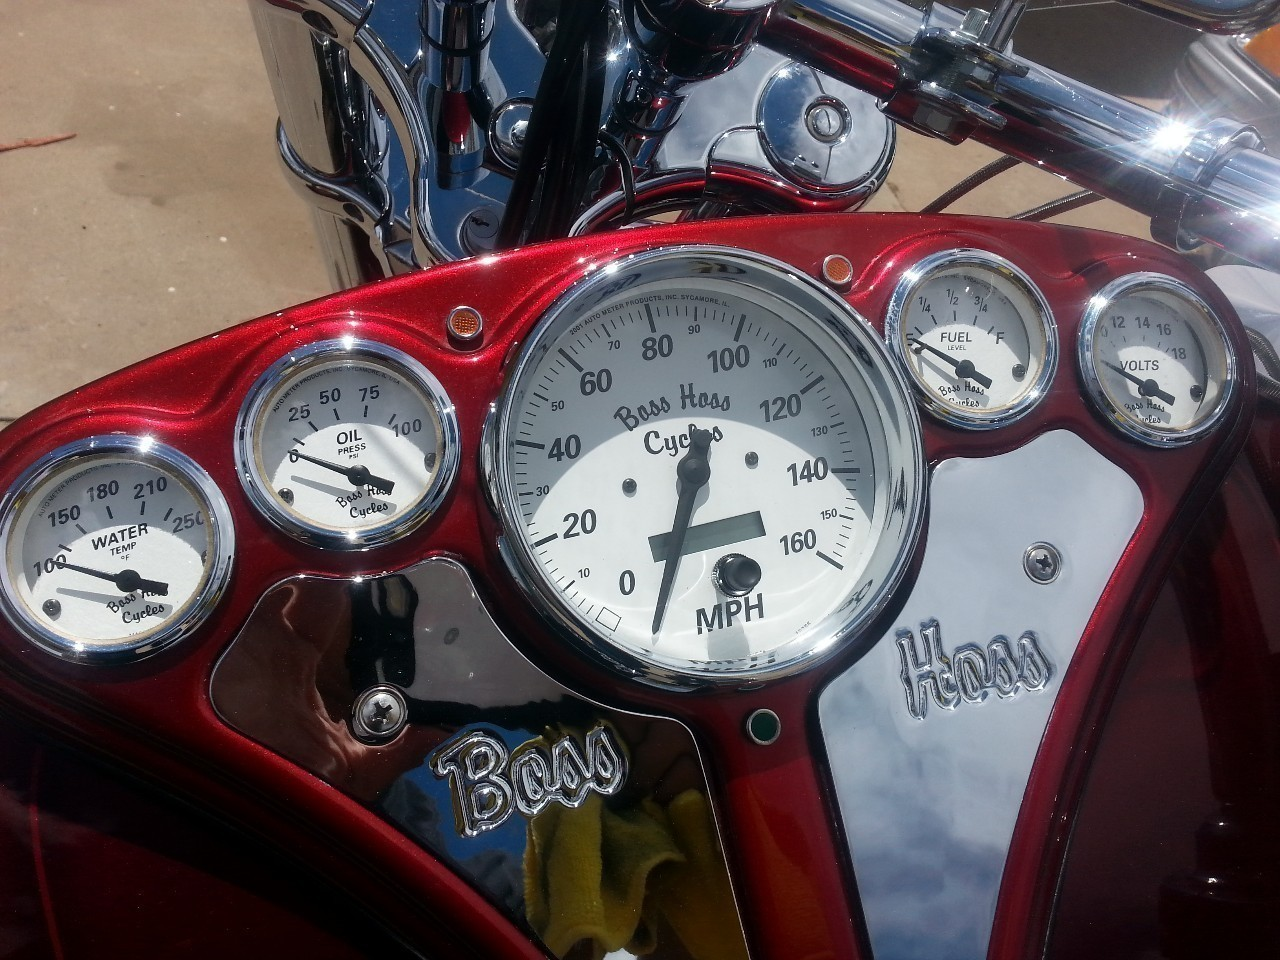 See more photos for this Boss Hoss 350 CI ZZ4, 2002 motorcycle listing